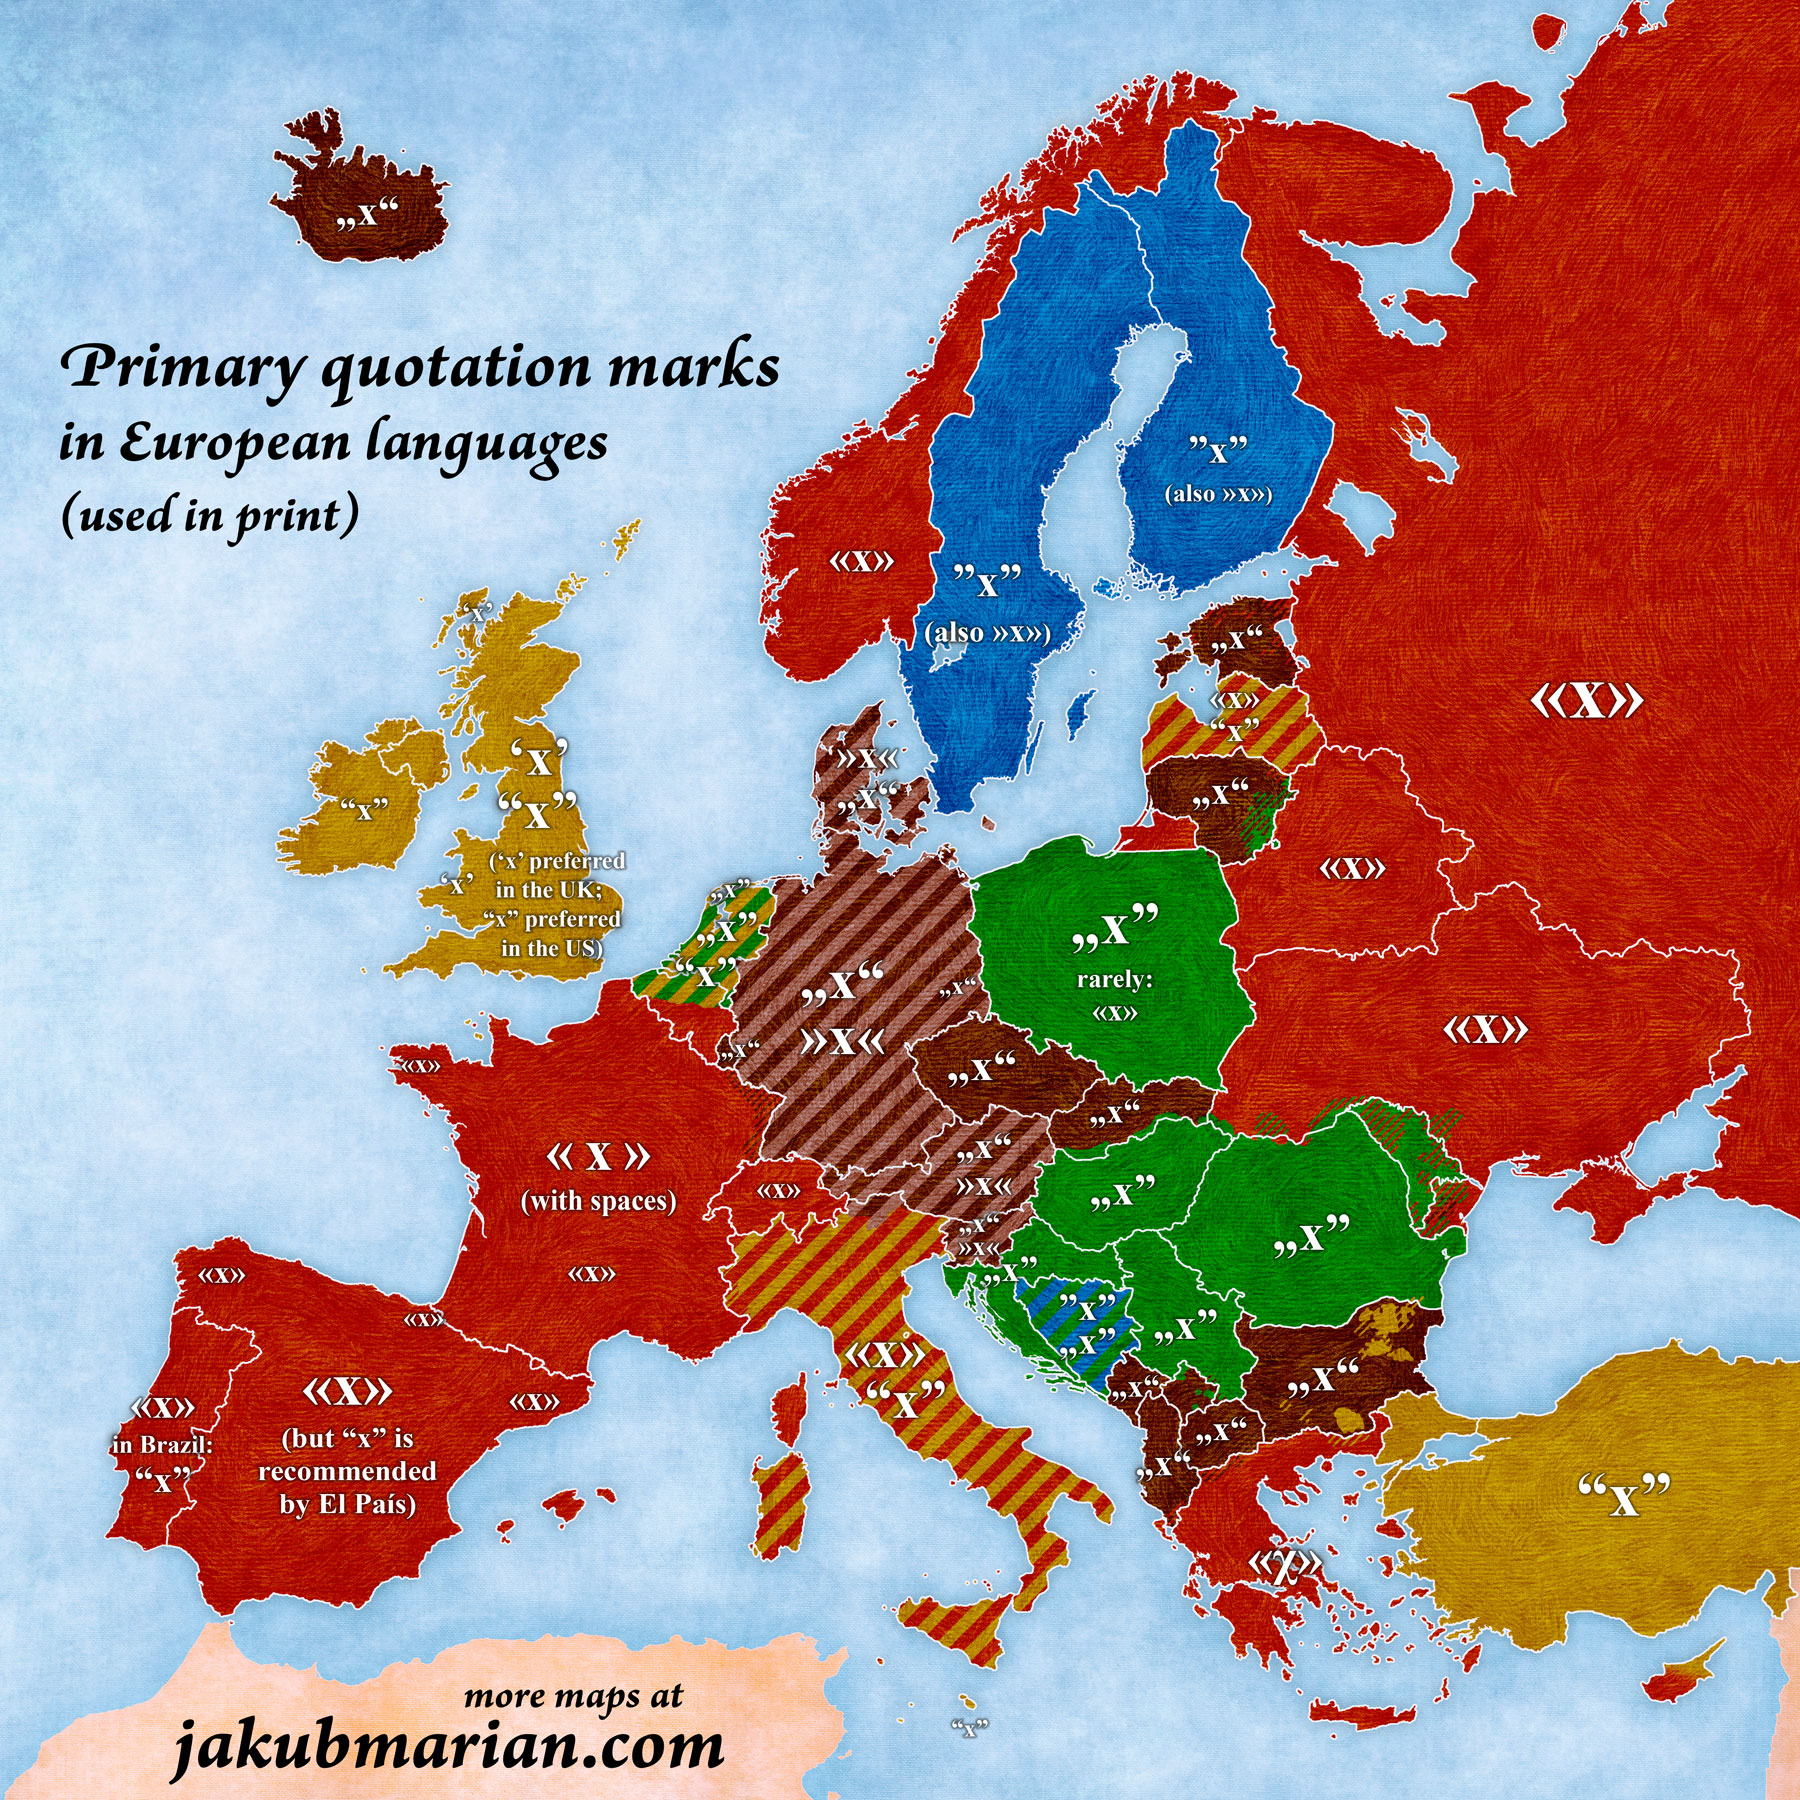 Map of quotation marks in European languages